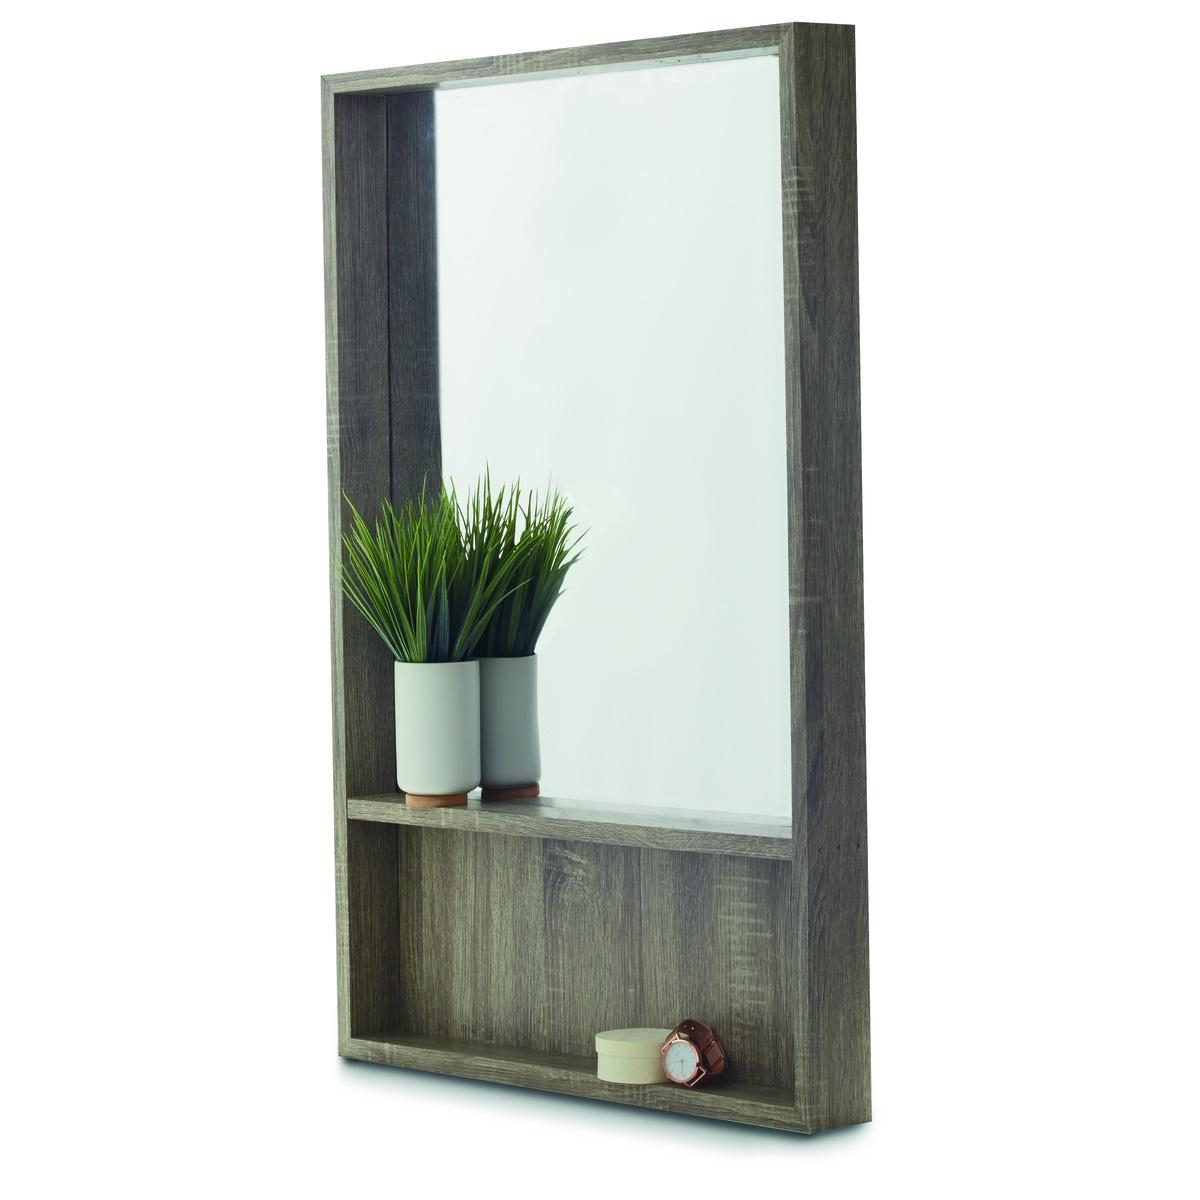 Mirrors | Wall Mirrors & Full Length Mirrors | Kmart Throughout Dressing Mirror Price (Image 16 of 20)